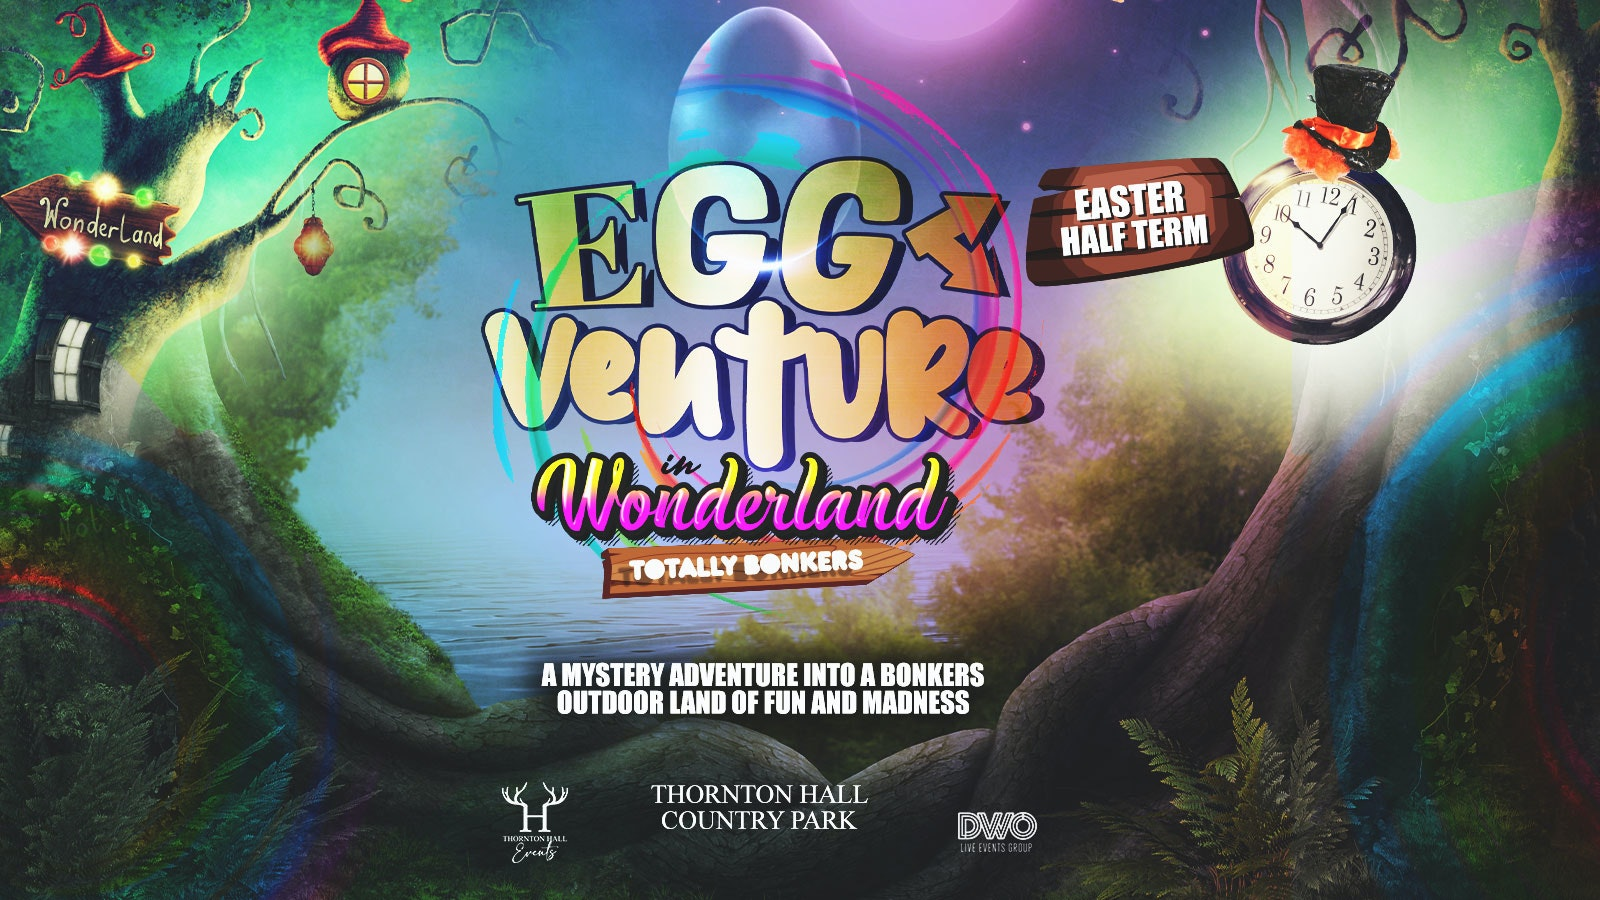 EggVenture in Wonderland –  Sunday 11th April – 12.30pm